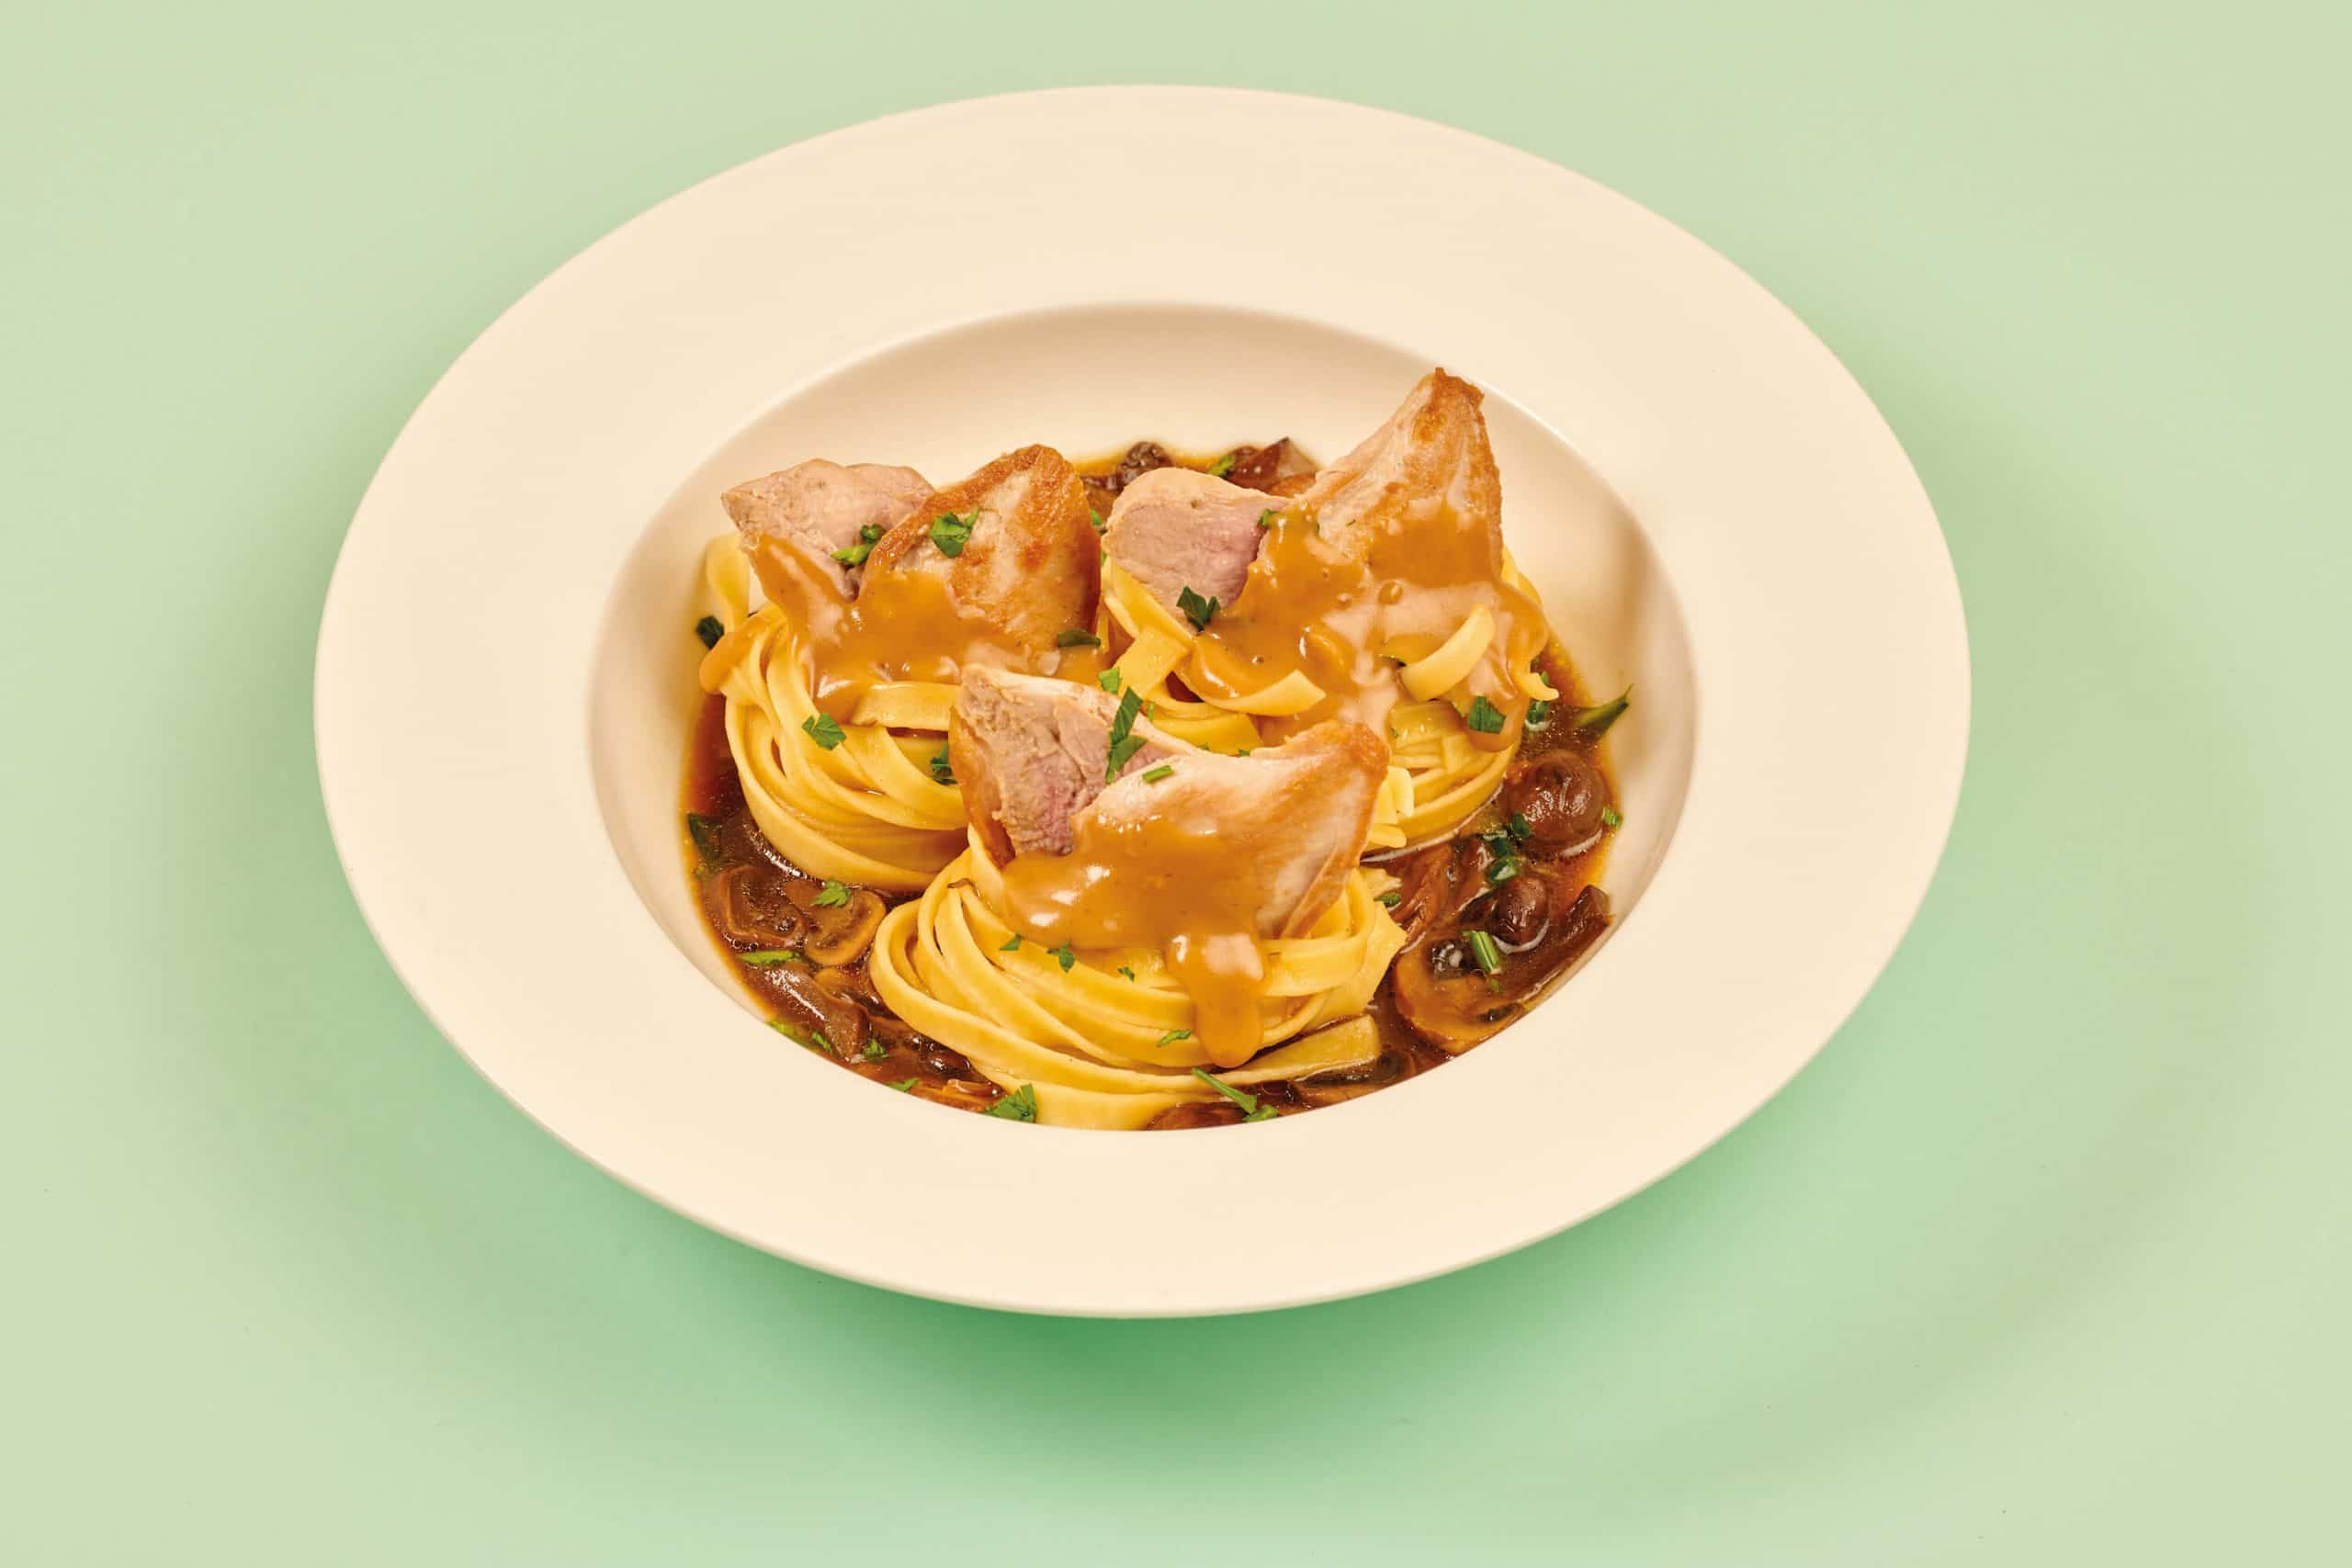 Tagliatelle Nests with Quail Breast